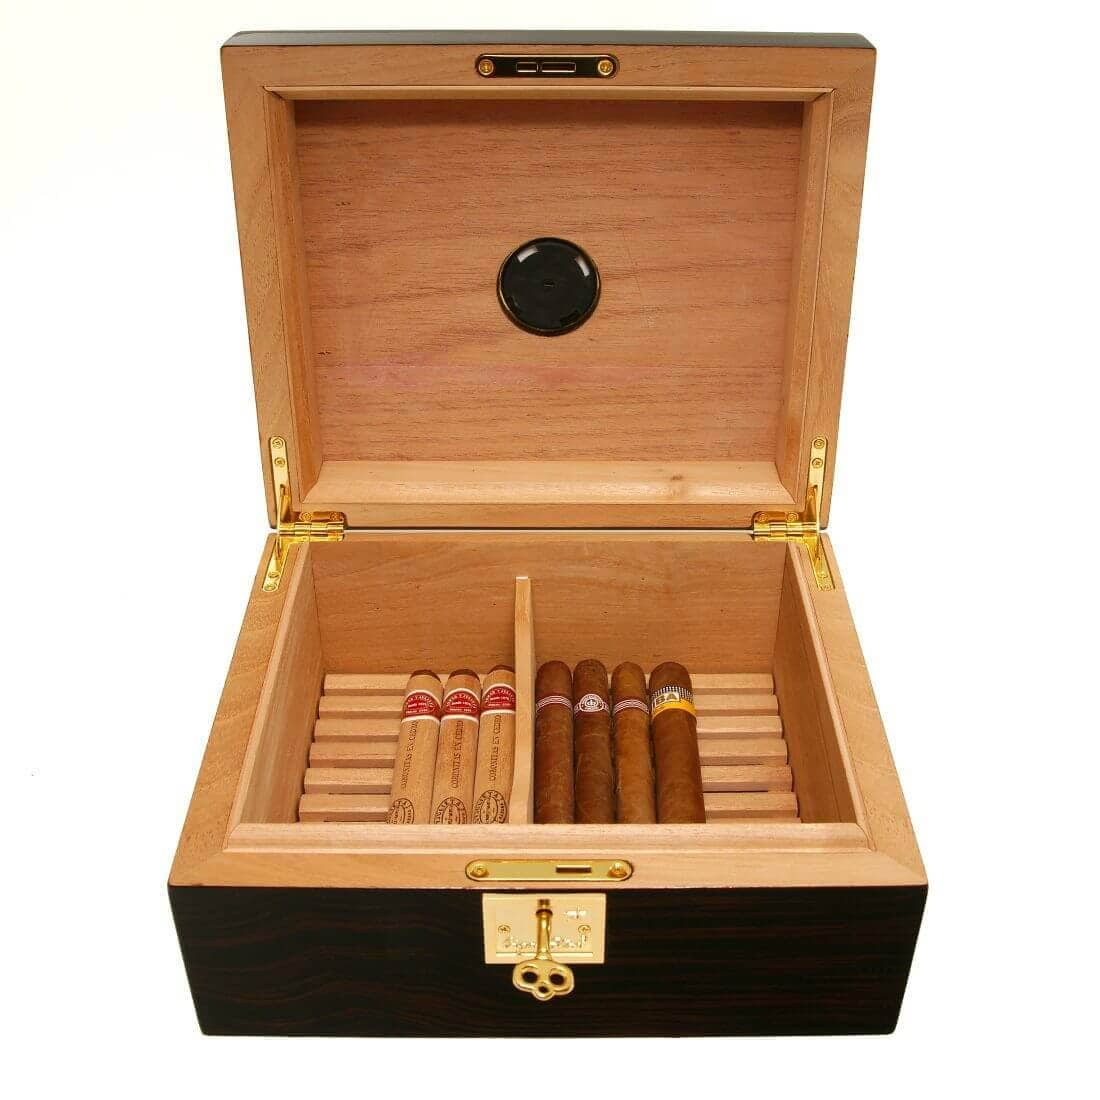 Perfect gift for a cigar smoker?